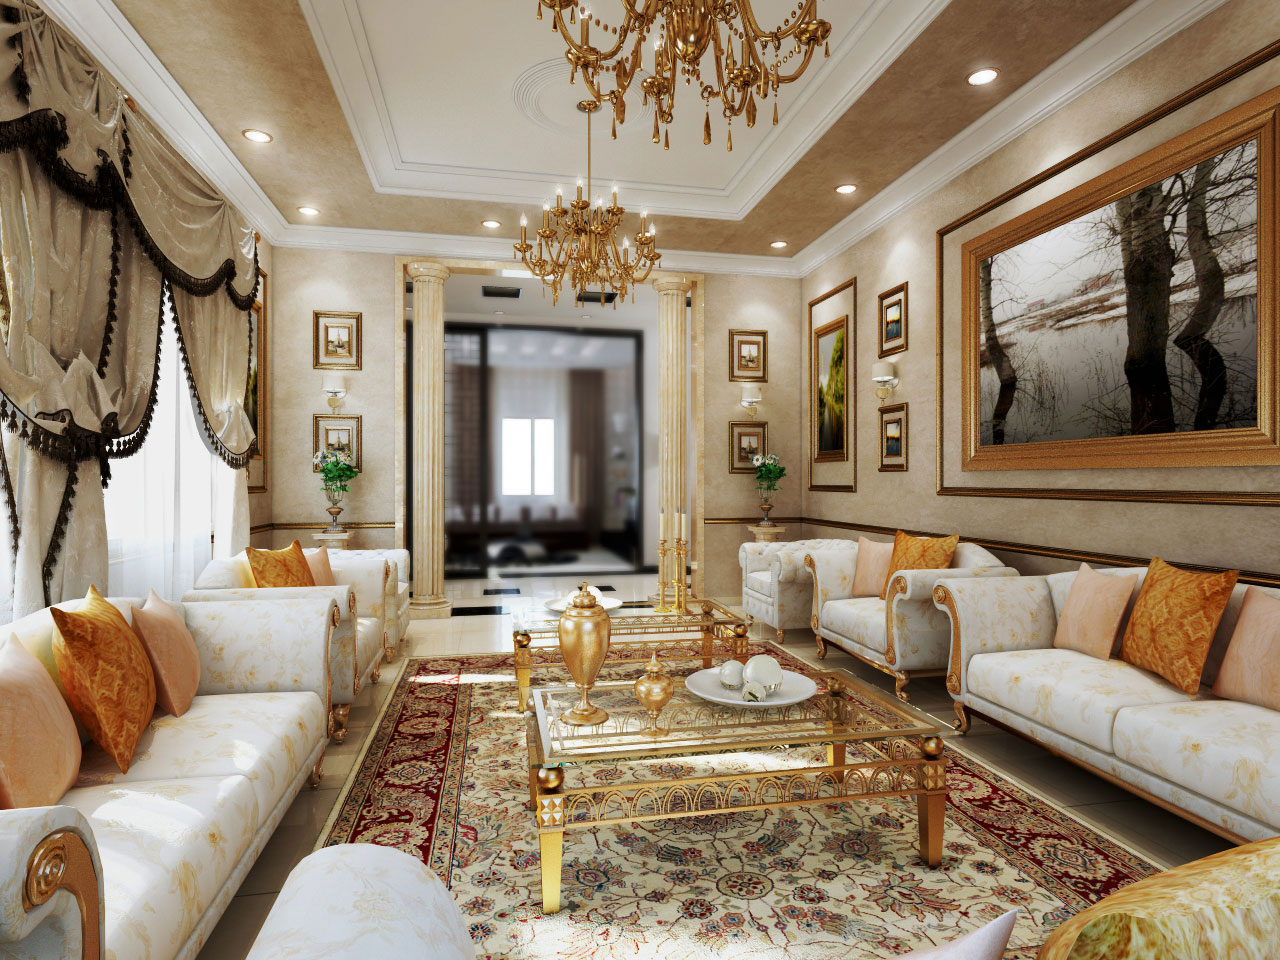 House-Interior-Gallery-Of-Proper-Home-Interiors-8 House Interior - Gallery of the right home interiors